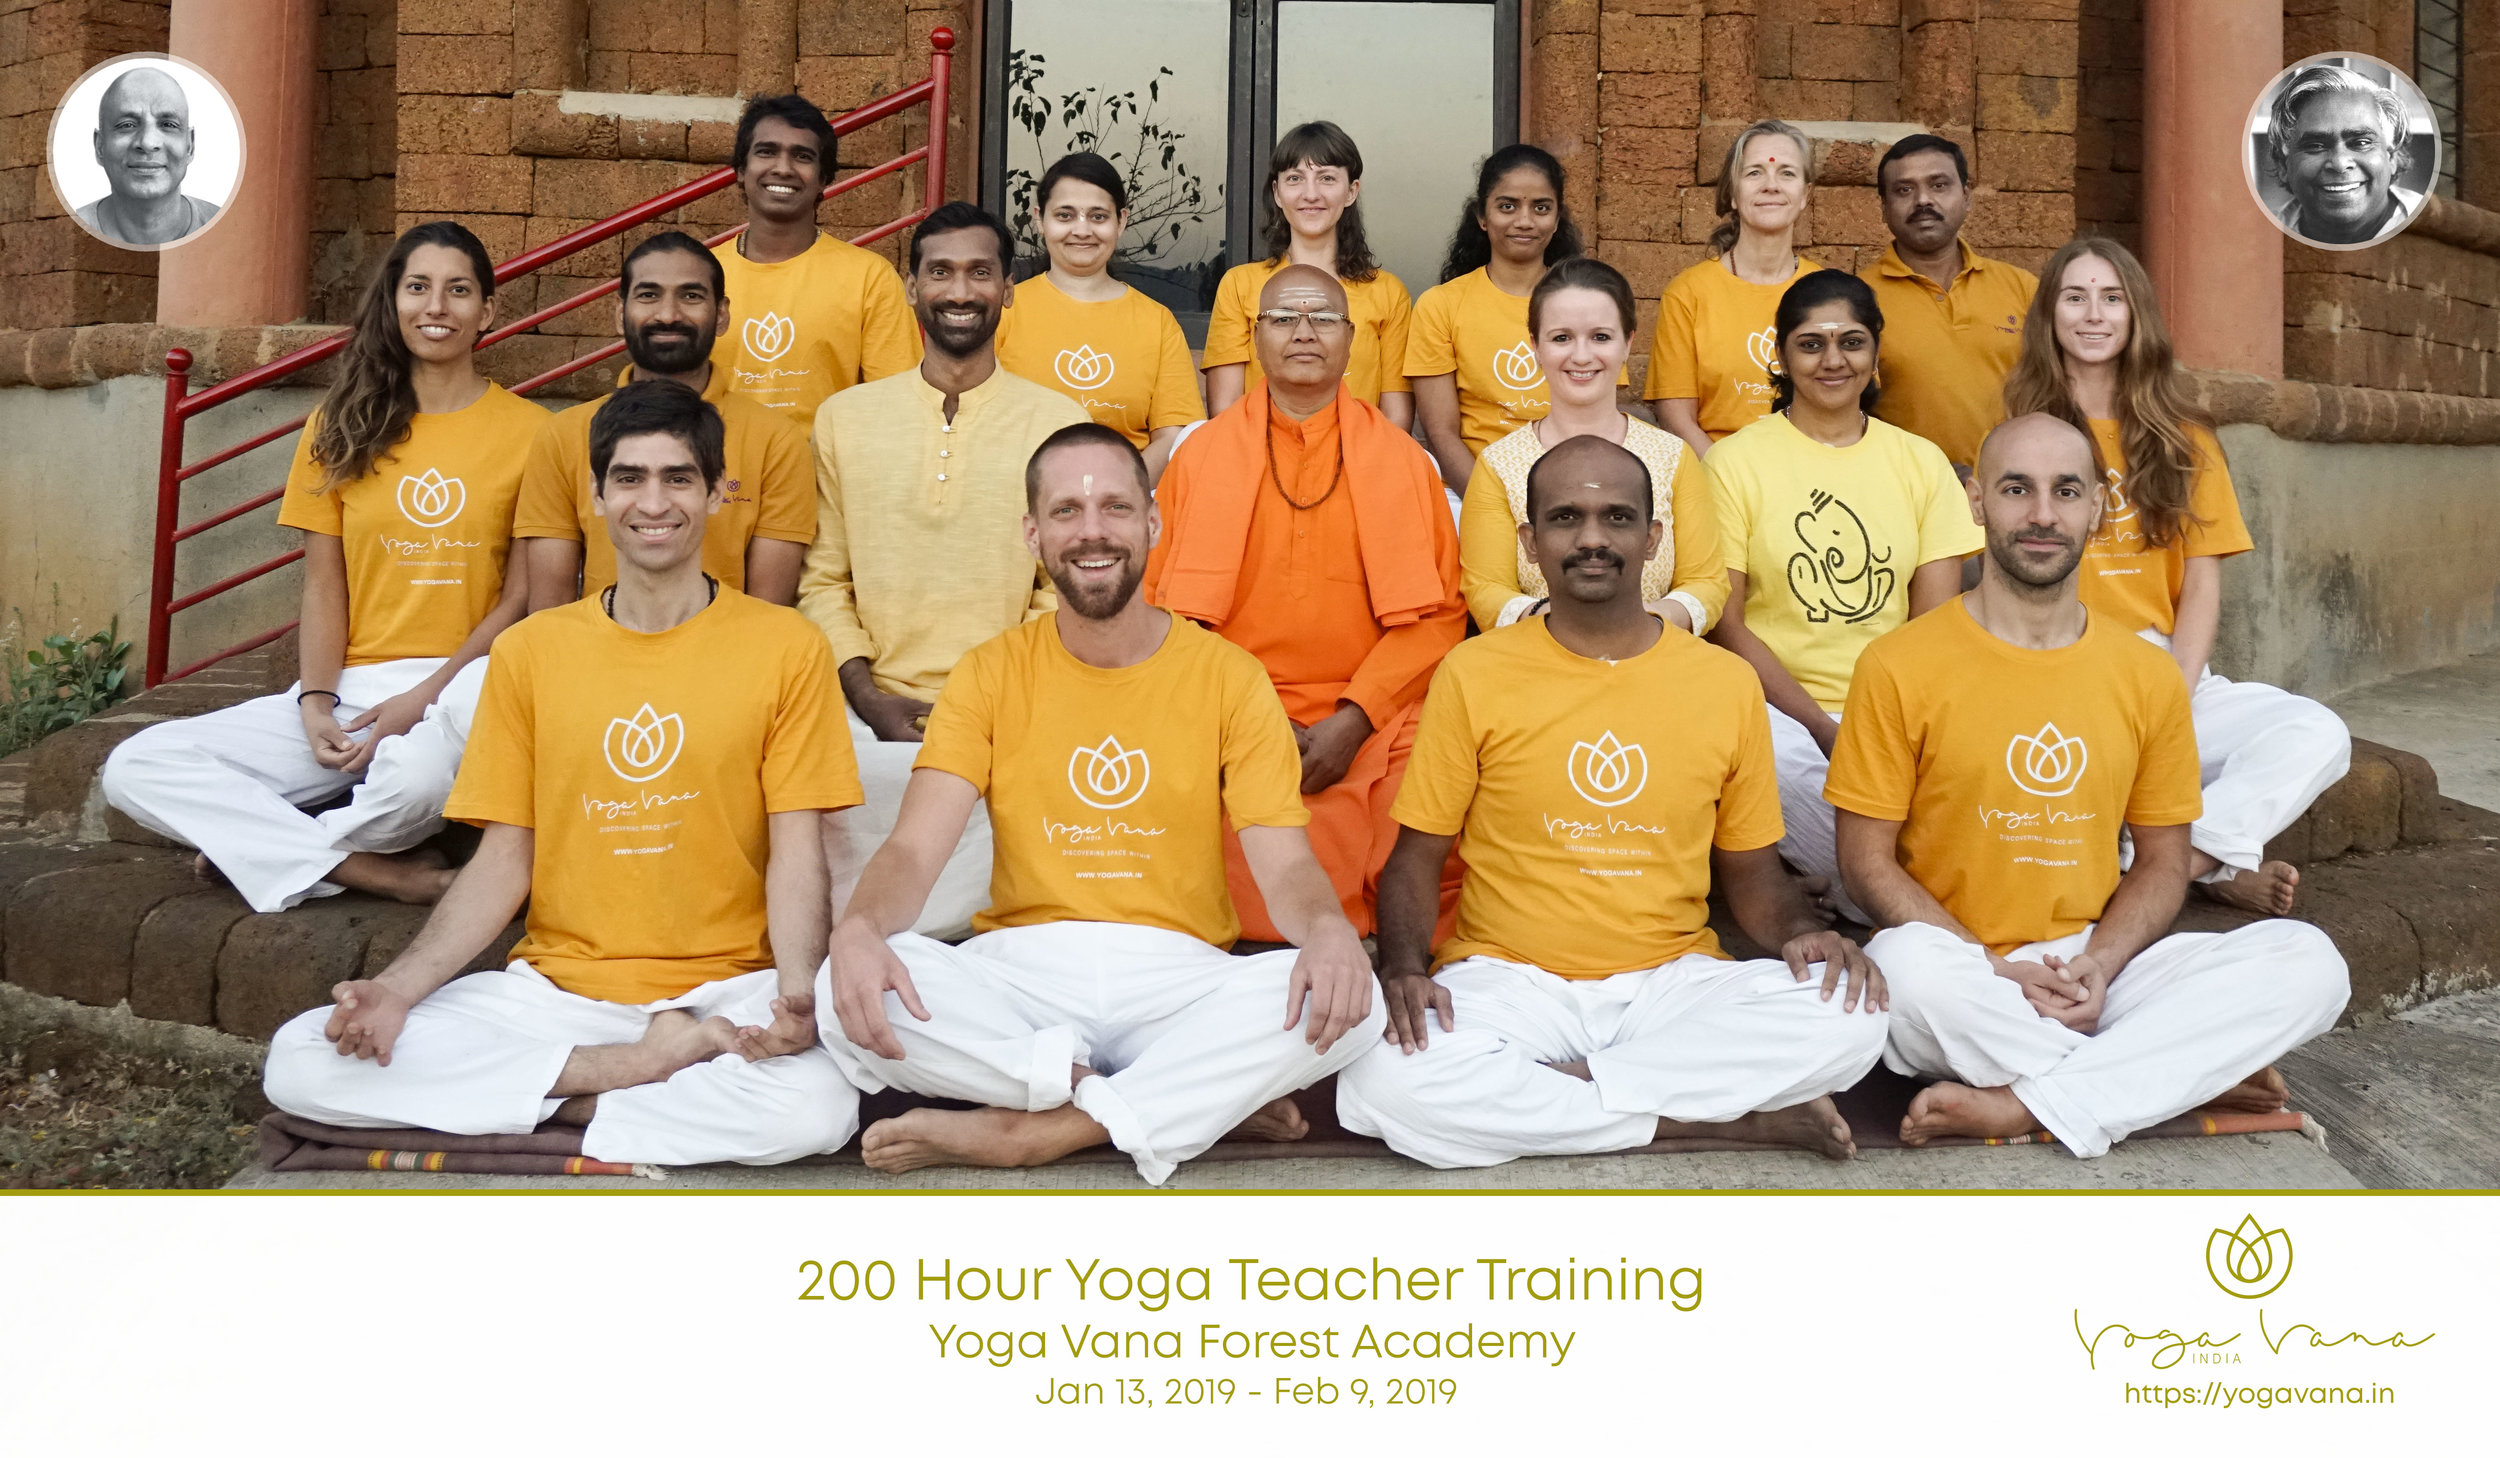 201901 Yoga Vana TTC Group Photo.jpg